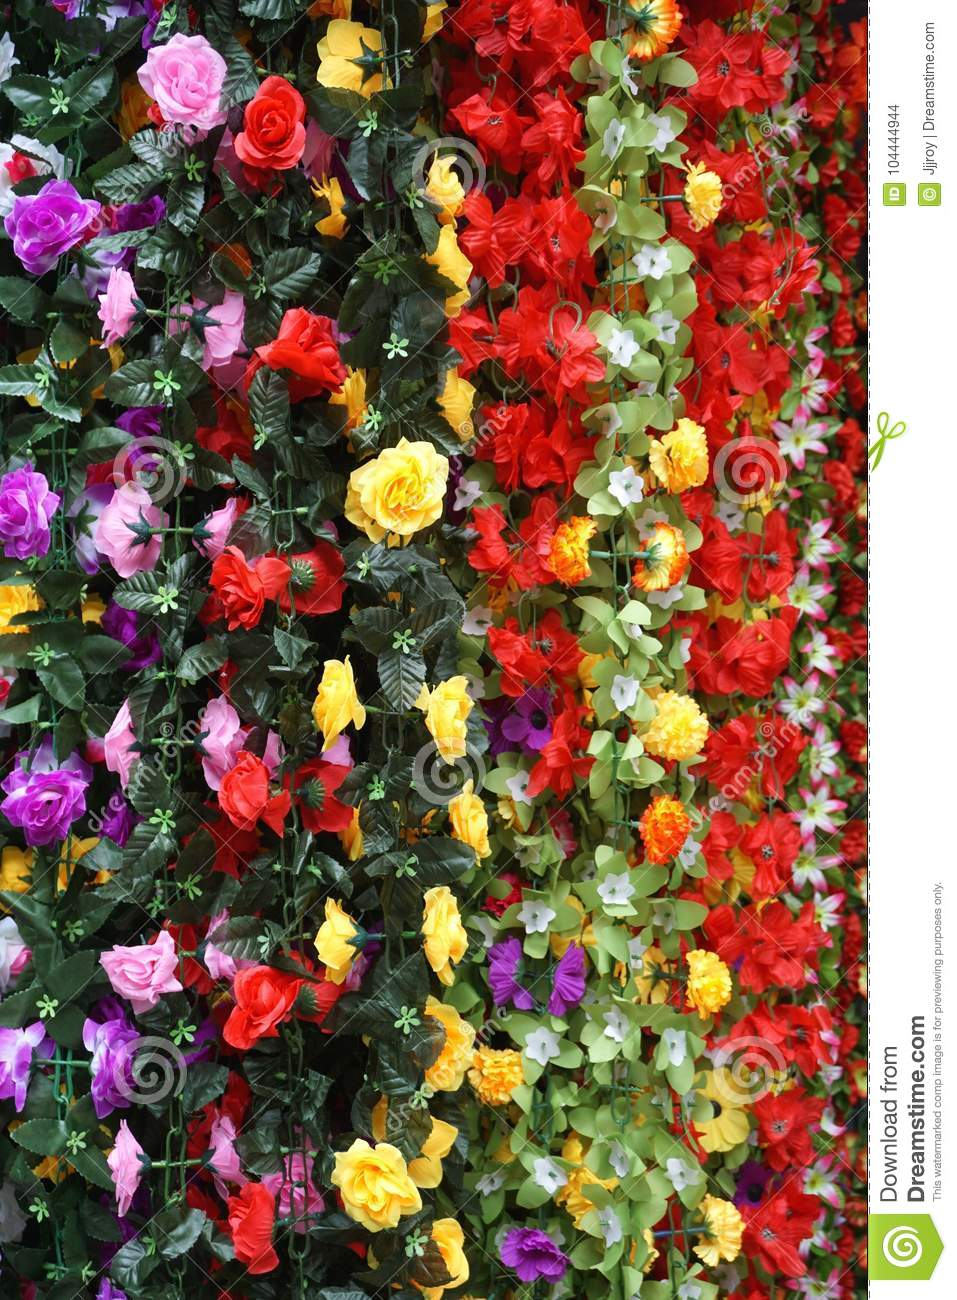 Colorful silk flower garlands for sale in hanoi vietnam market download colorful silk flower garlands for sale in hanoi vietnam market stock photo image mightylinksfo